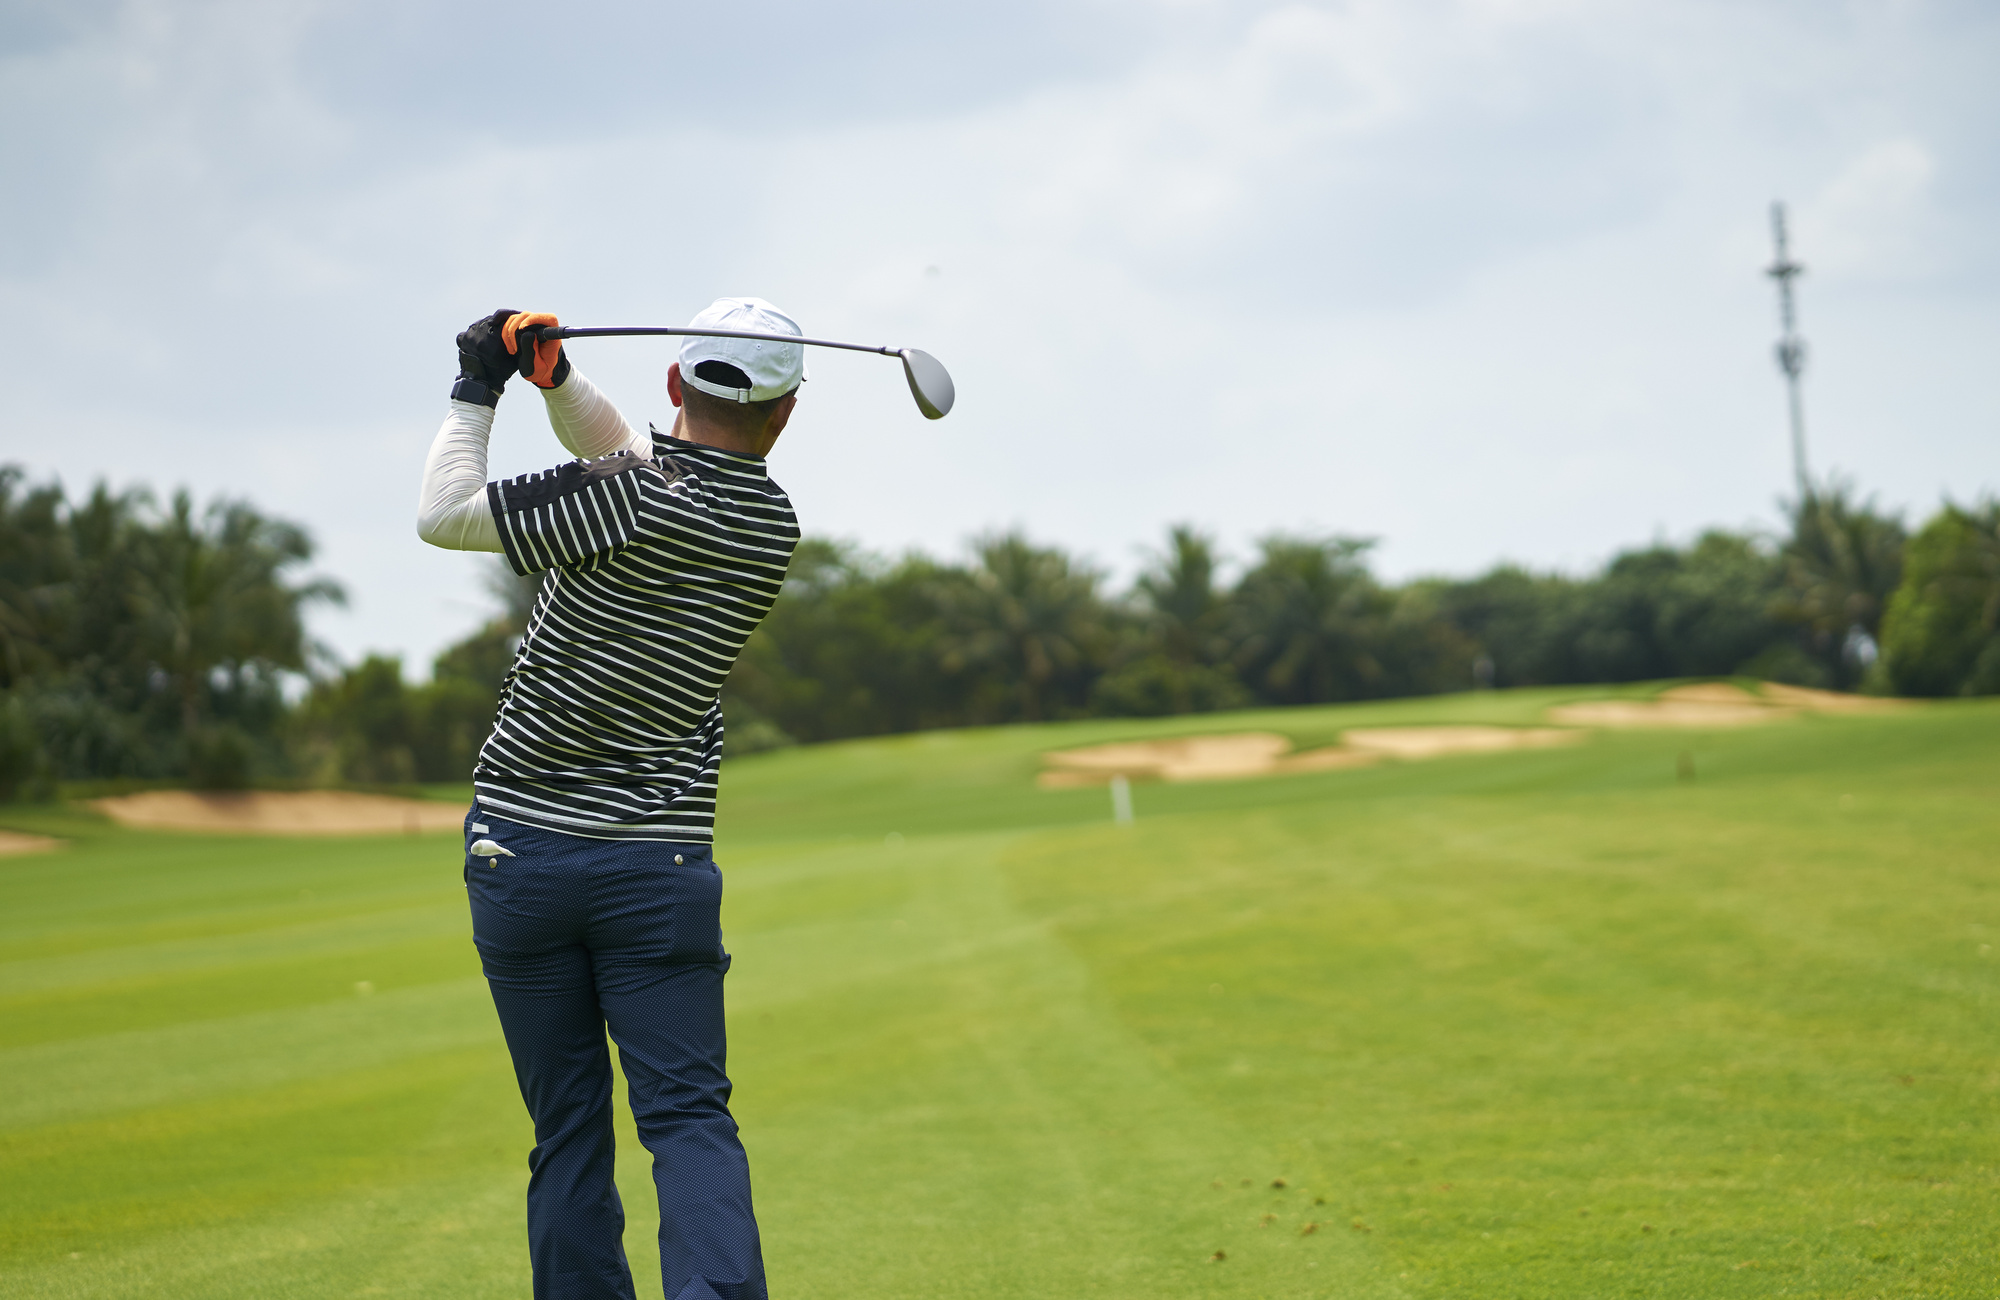 A Golf Driver Tip To Remember